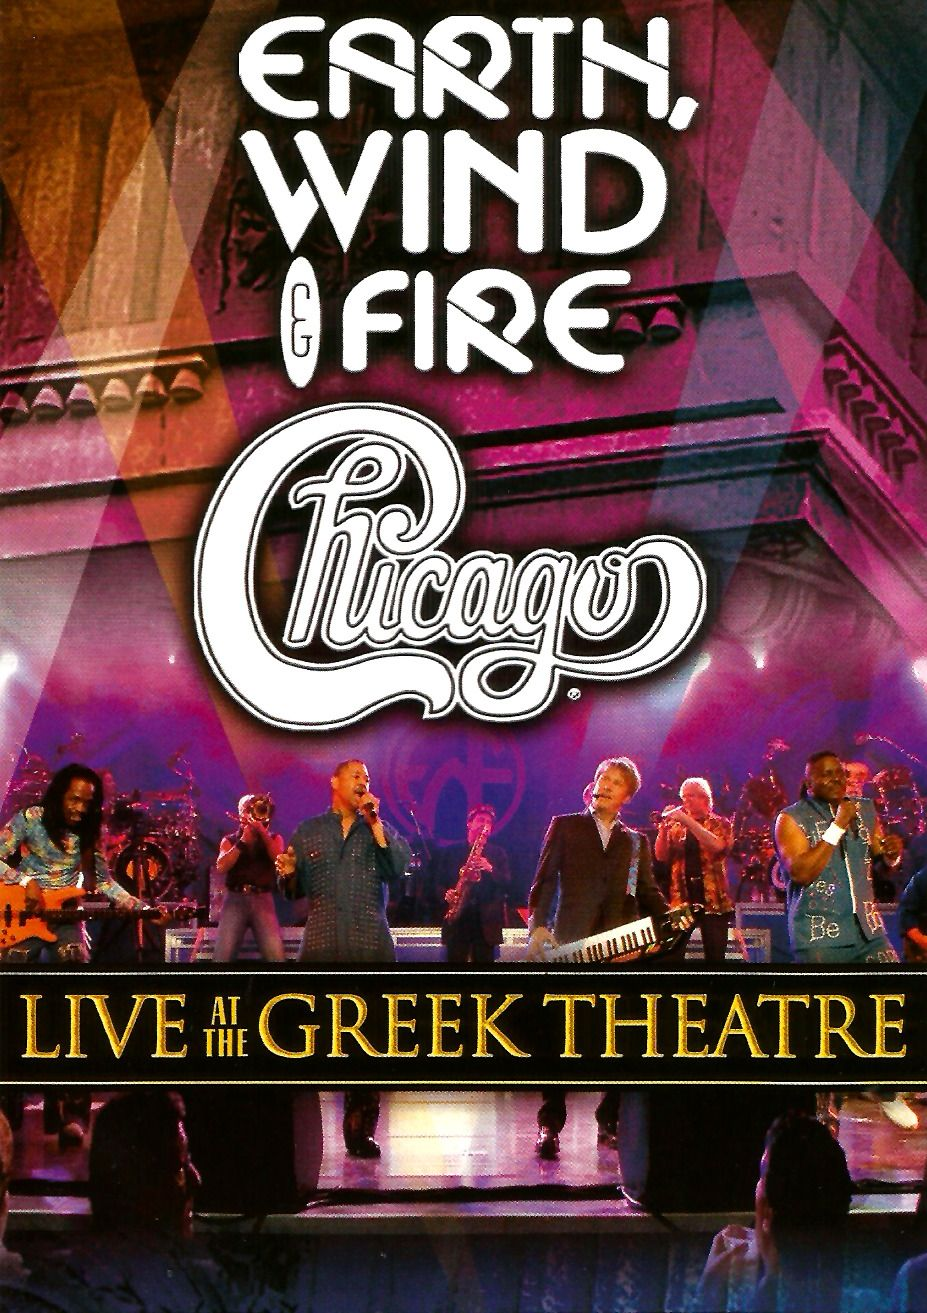 Chicago / Earth Wind & Fire Live at the Greek Theatre